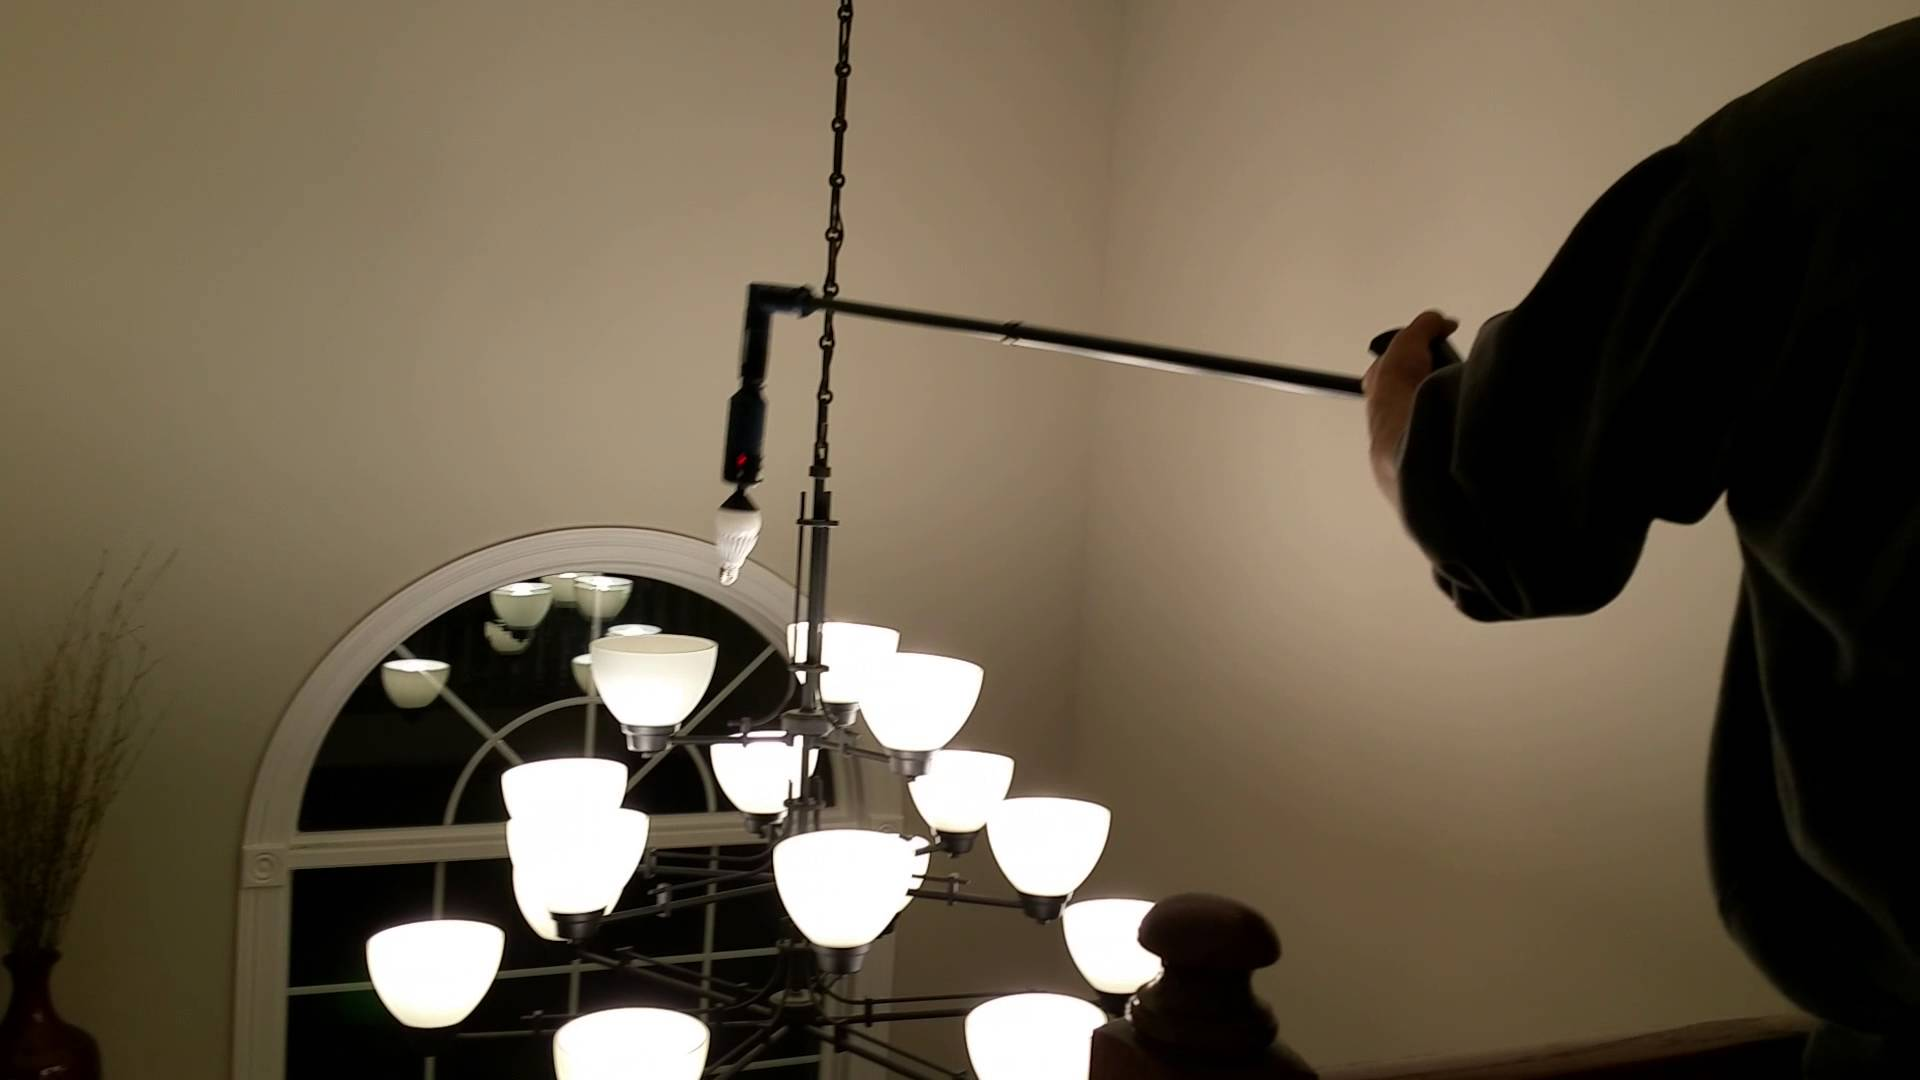 10 Reasons You Should Buy A High Ceiling Light Bulb